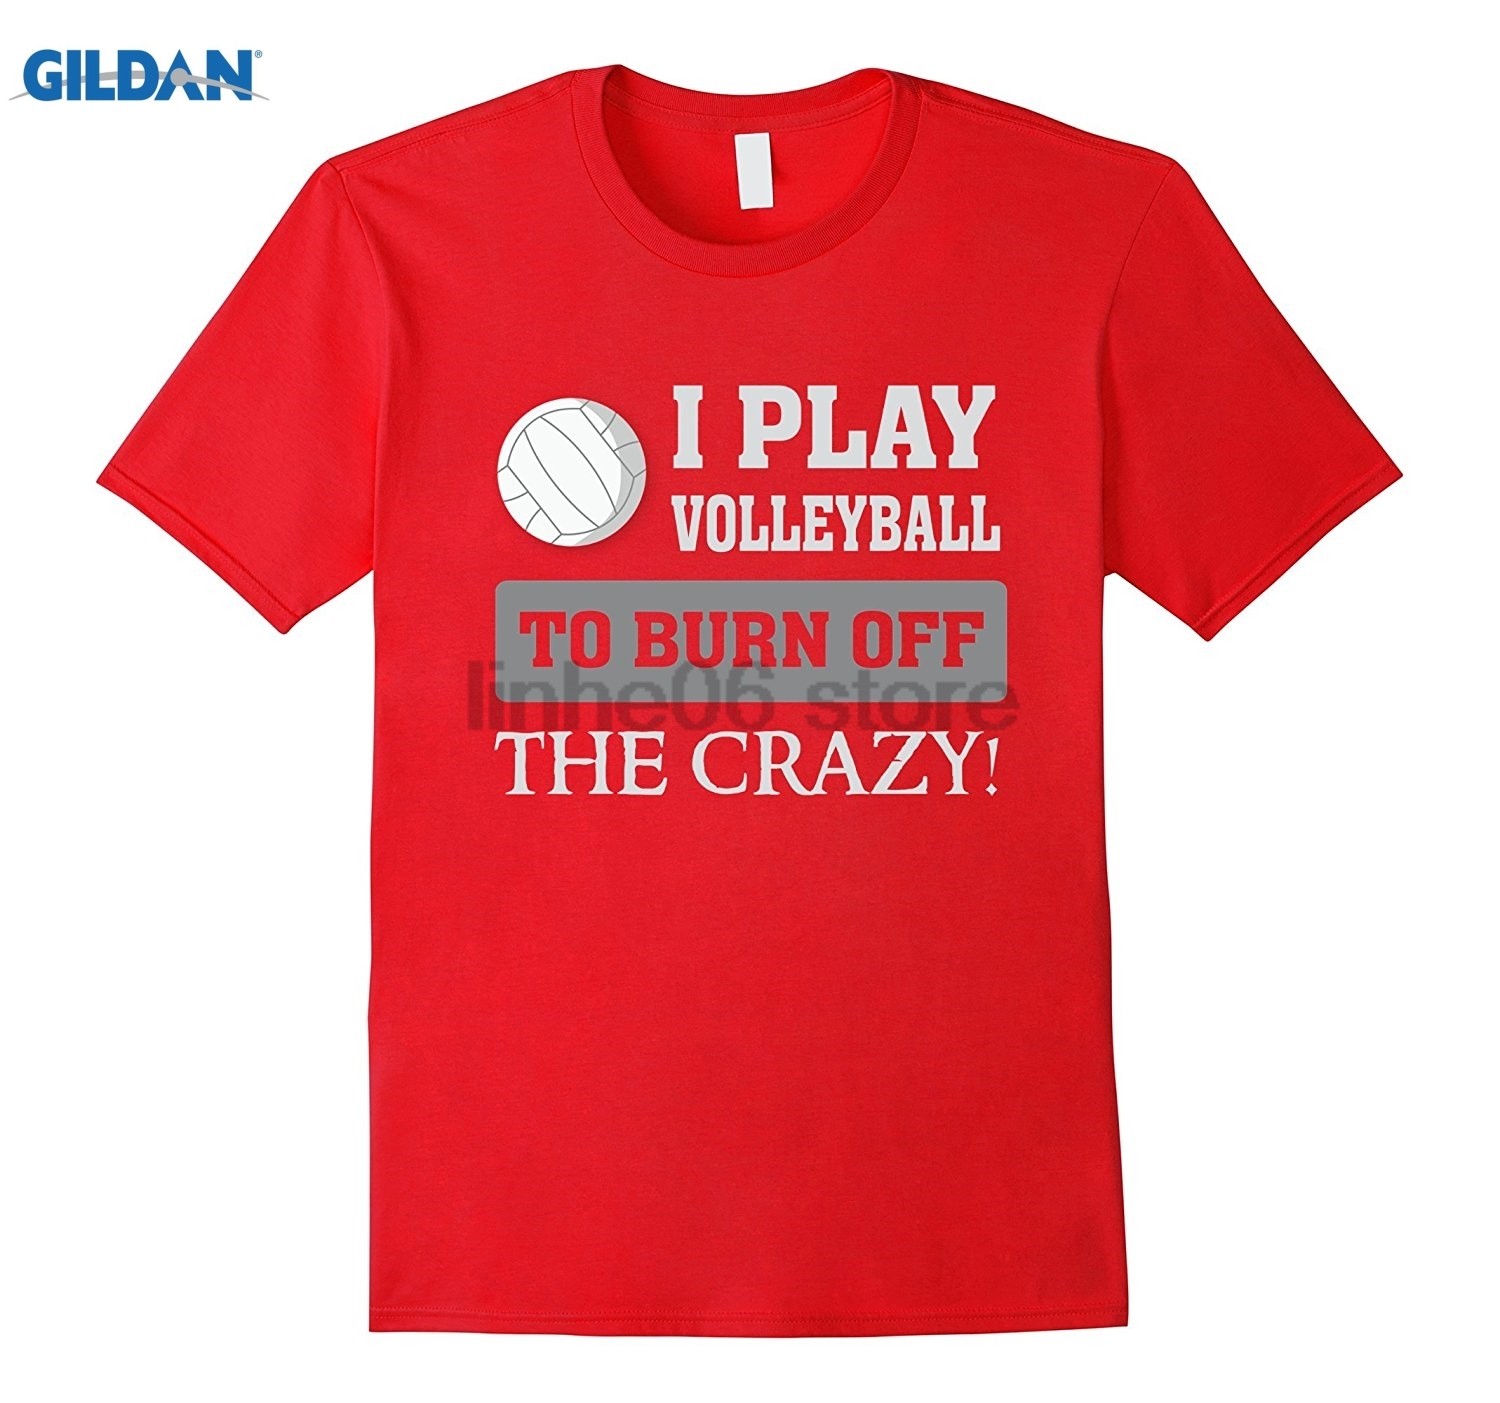 GILDAN I play to burn off the crazy - Funny T Shirt Cotton fashion 2018 trend T-shirt gl ...